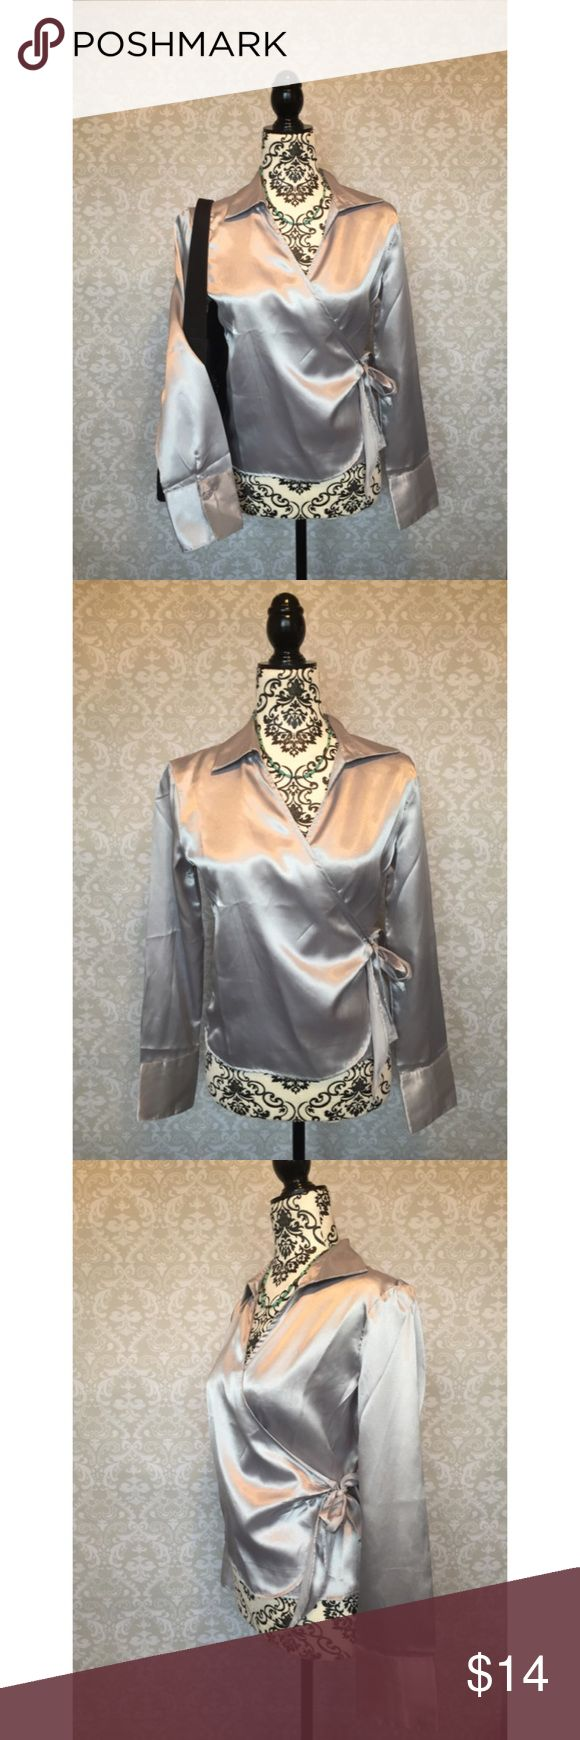 Satiny silver GAP wrap top Elegant silver satiny GAP wrap top. Perfect over a cami. Size is flexible: the side tie allows for adjustment. Versatile. No signs of wear noted.  🌟 I have an identical plum top listed. Bundle and save! GAP Tops Blouses